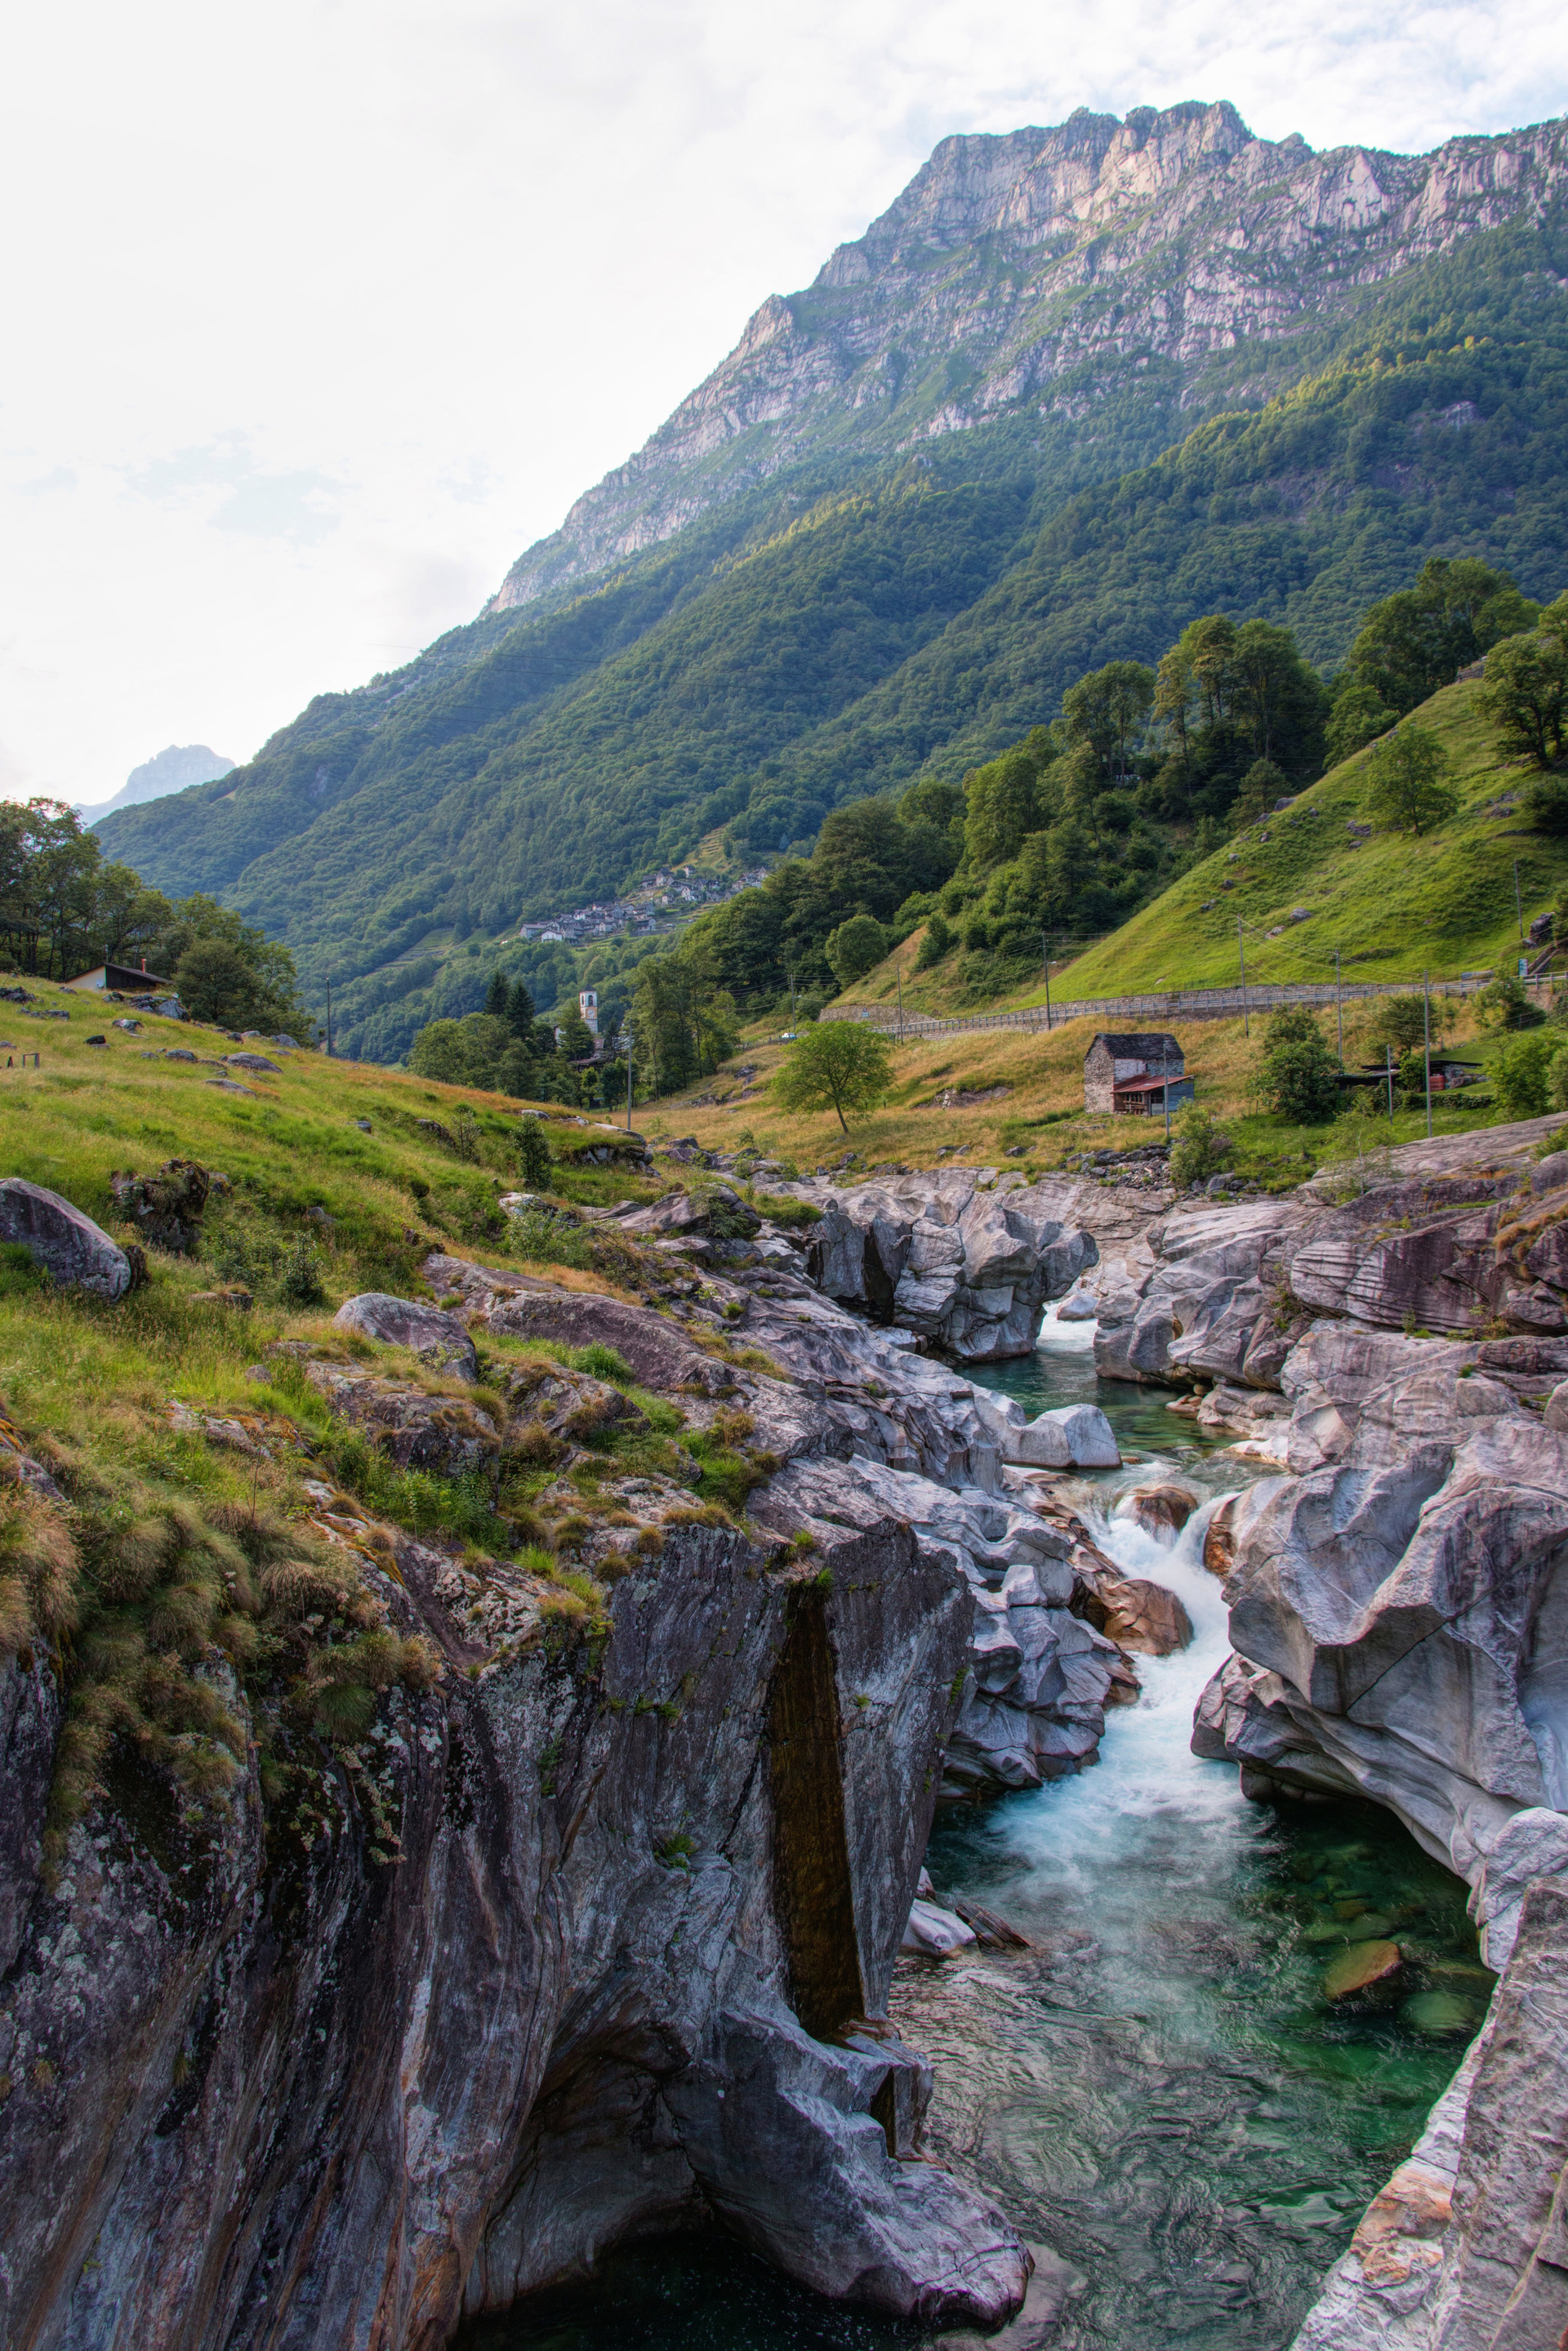 River flowing through rockys in landscape